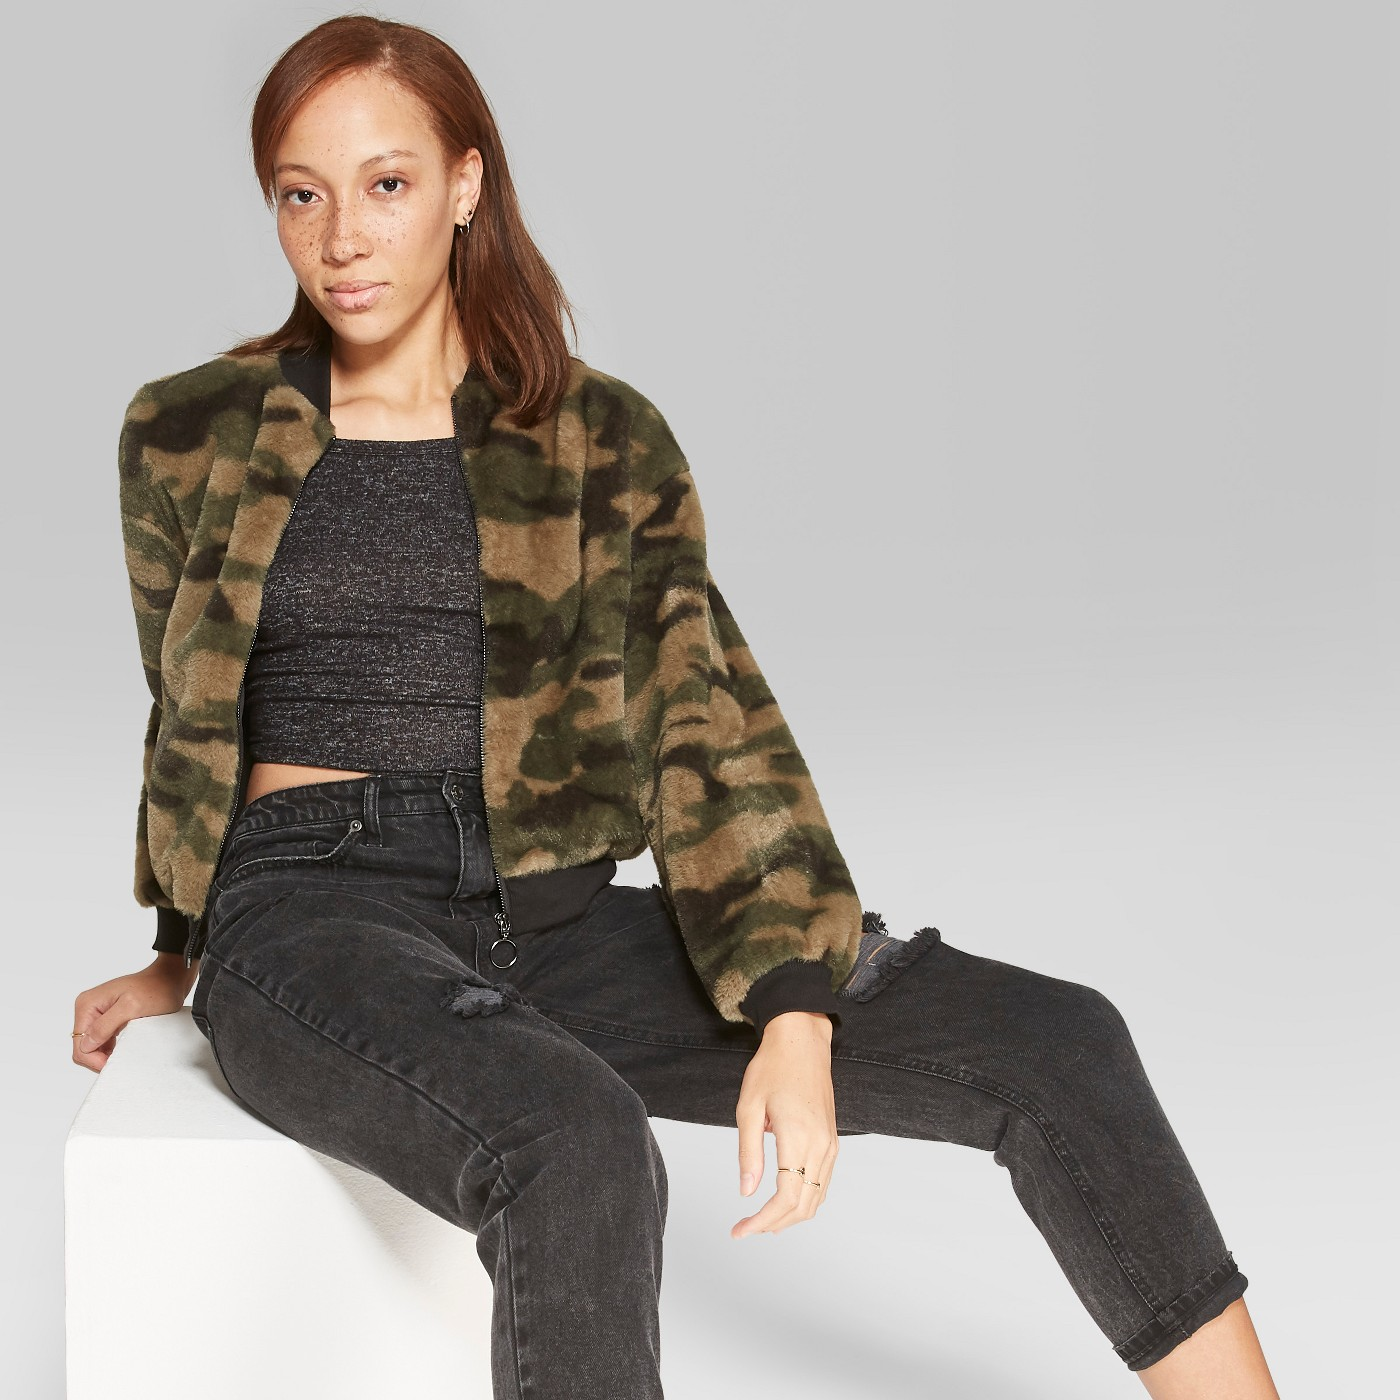 Women's Camo Print Full Zip Faux Fur Jacket - Wild Fable™ Green - image 1 of 3